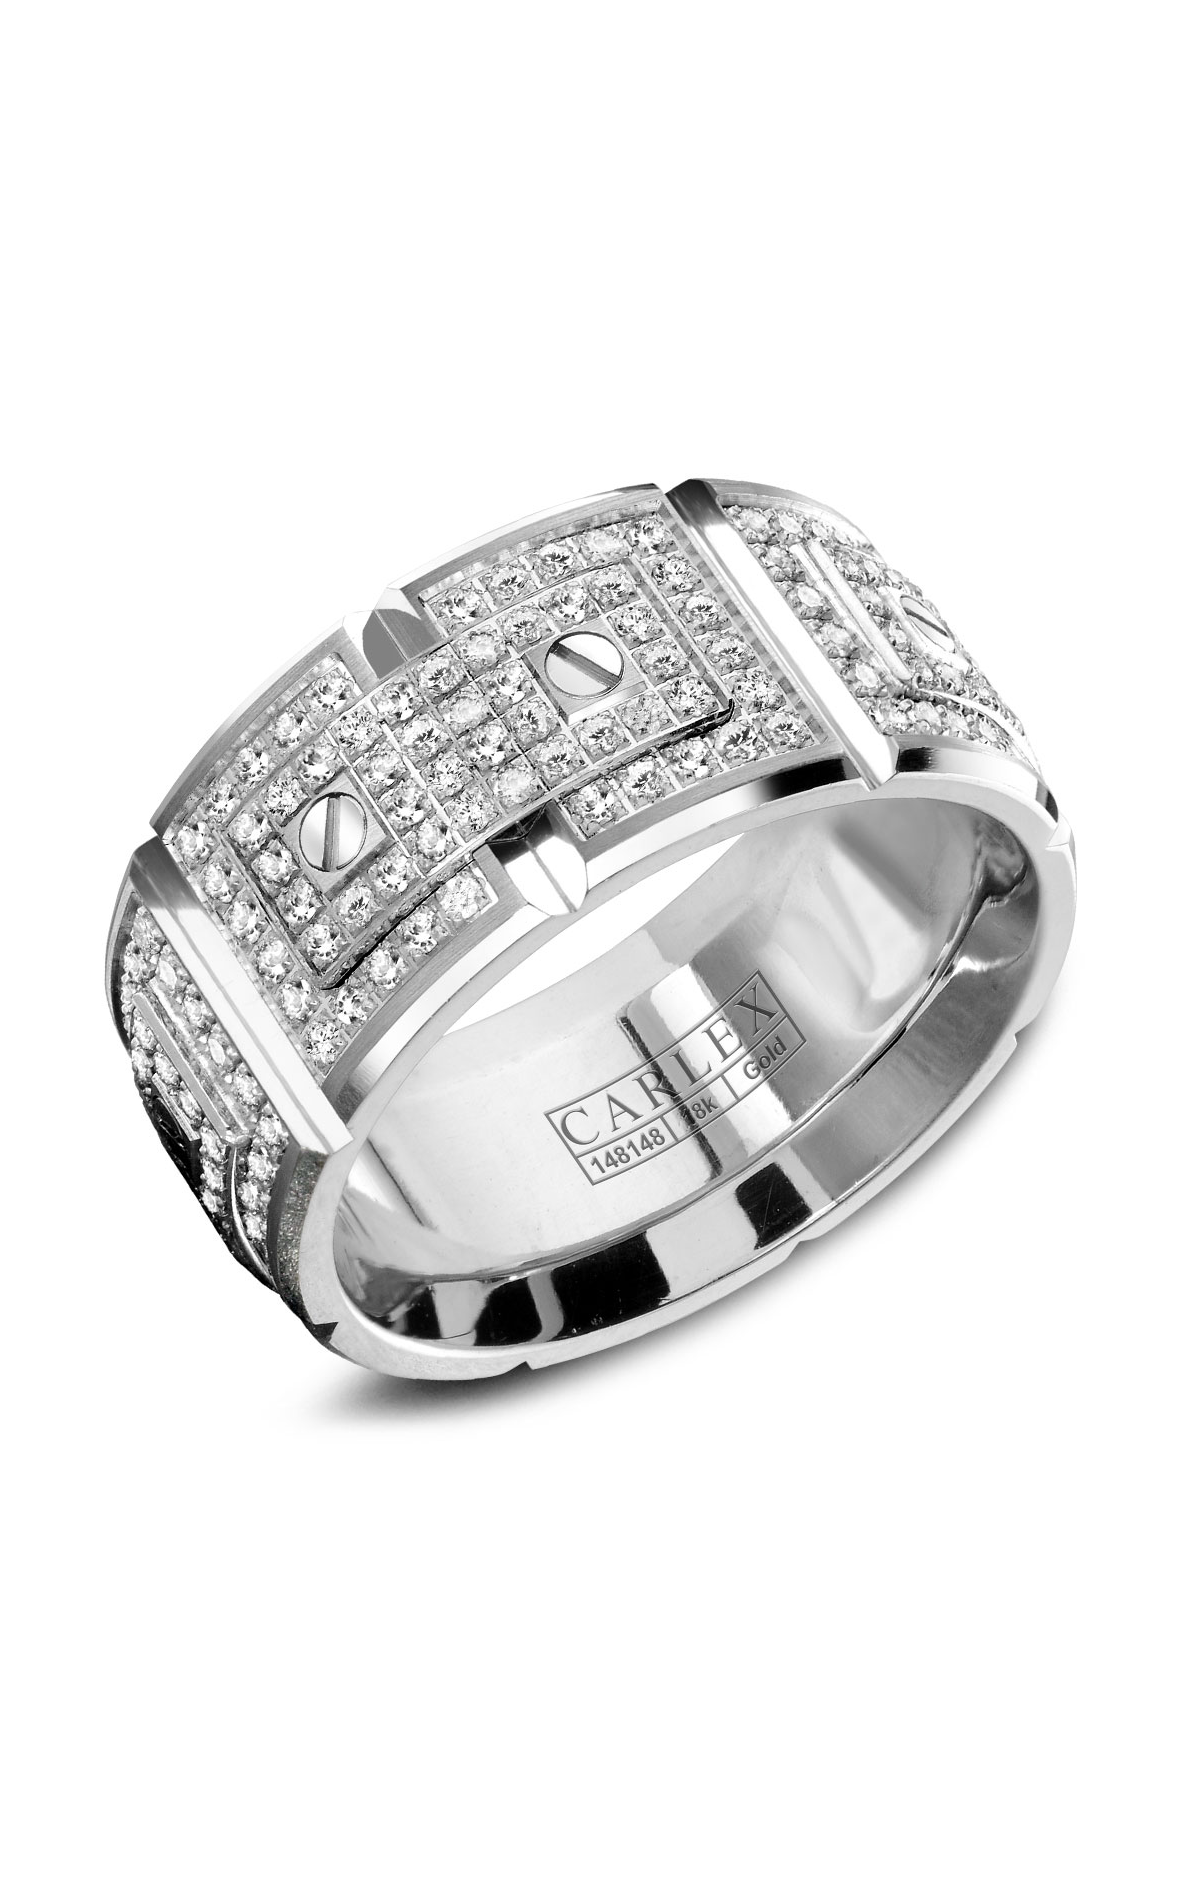 Carlex G2 Men's Wedding Band WB-9797WW product image